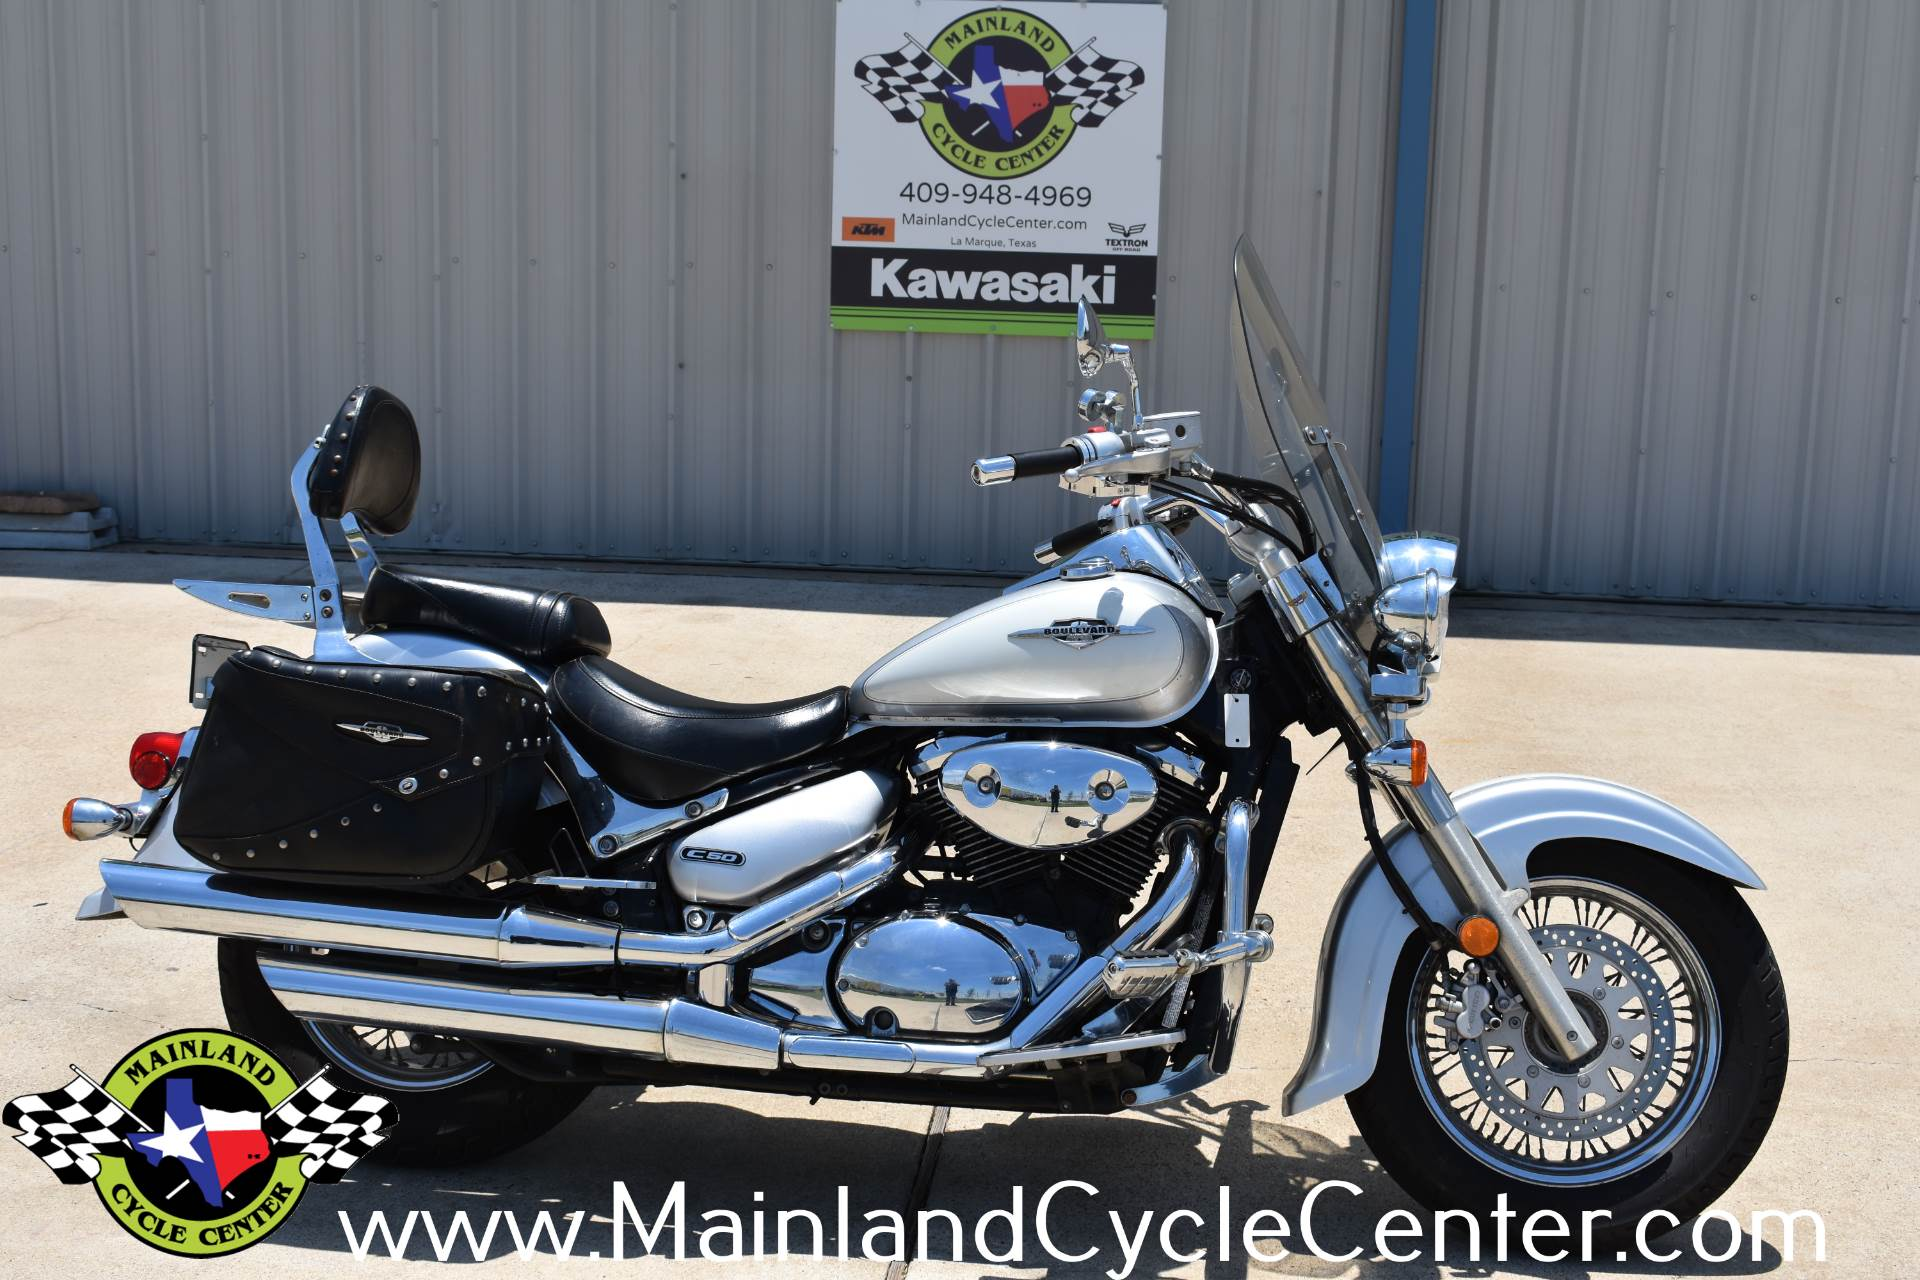 Used 2007 Suzuki Boulevard C50 White / Silver | Motorcycles in La ...